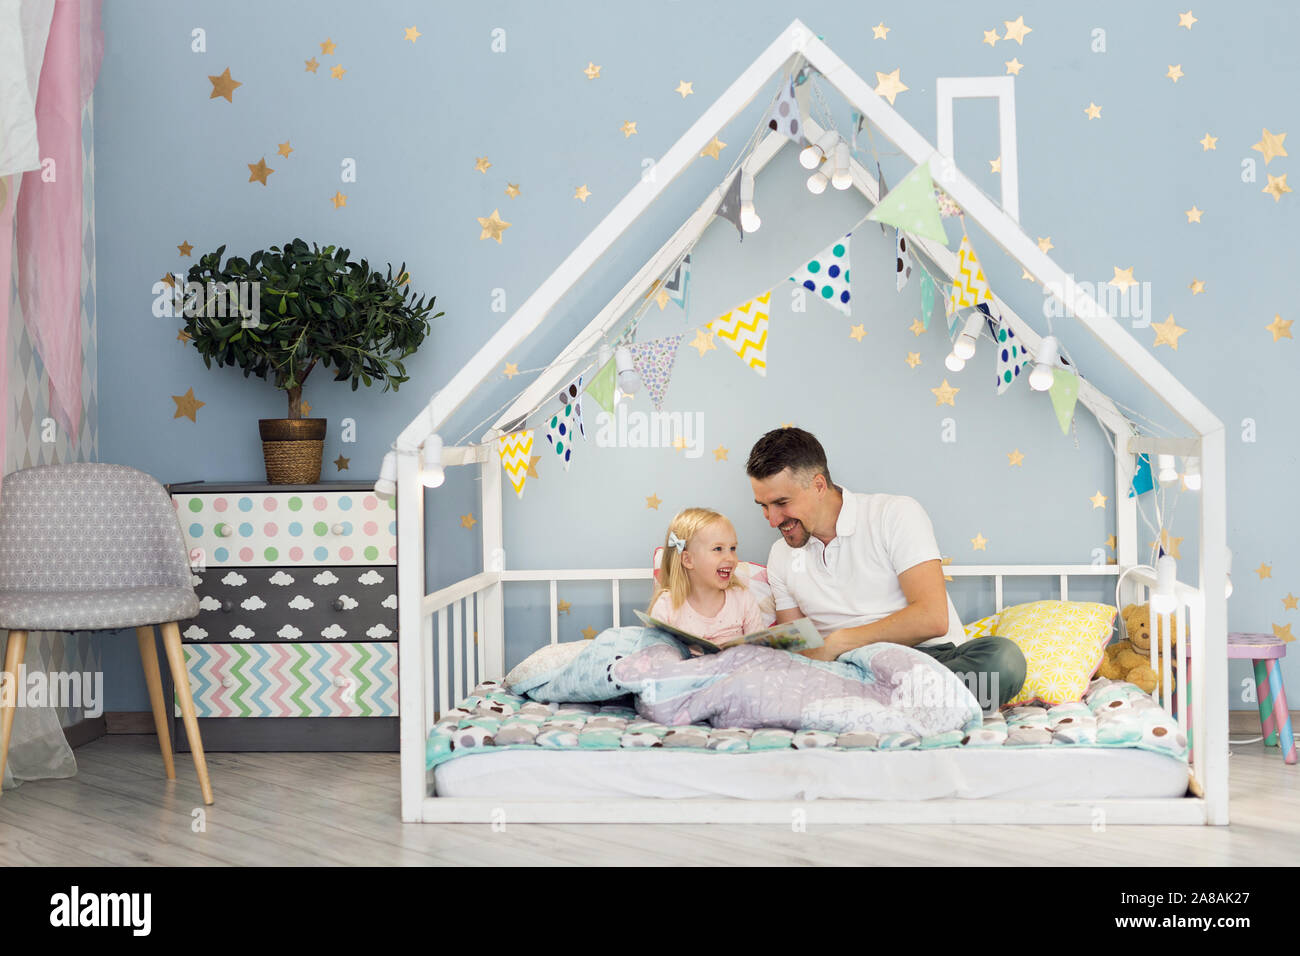 Happy Father Laughing With His 3 Years Old Girl While Sitting On White House Bed In Children Bedroom Stock Photo Alamy